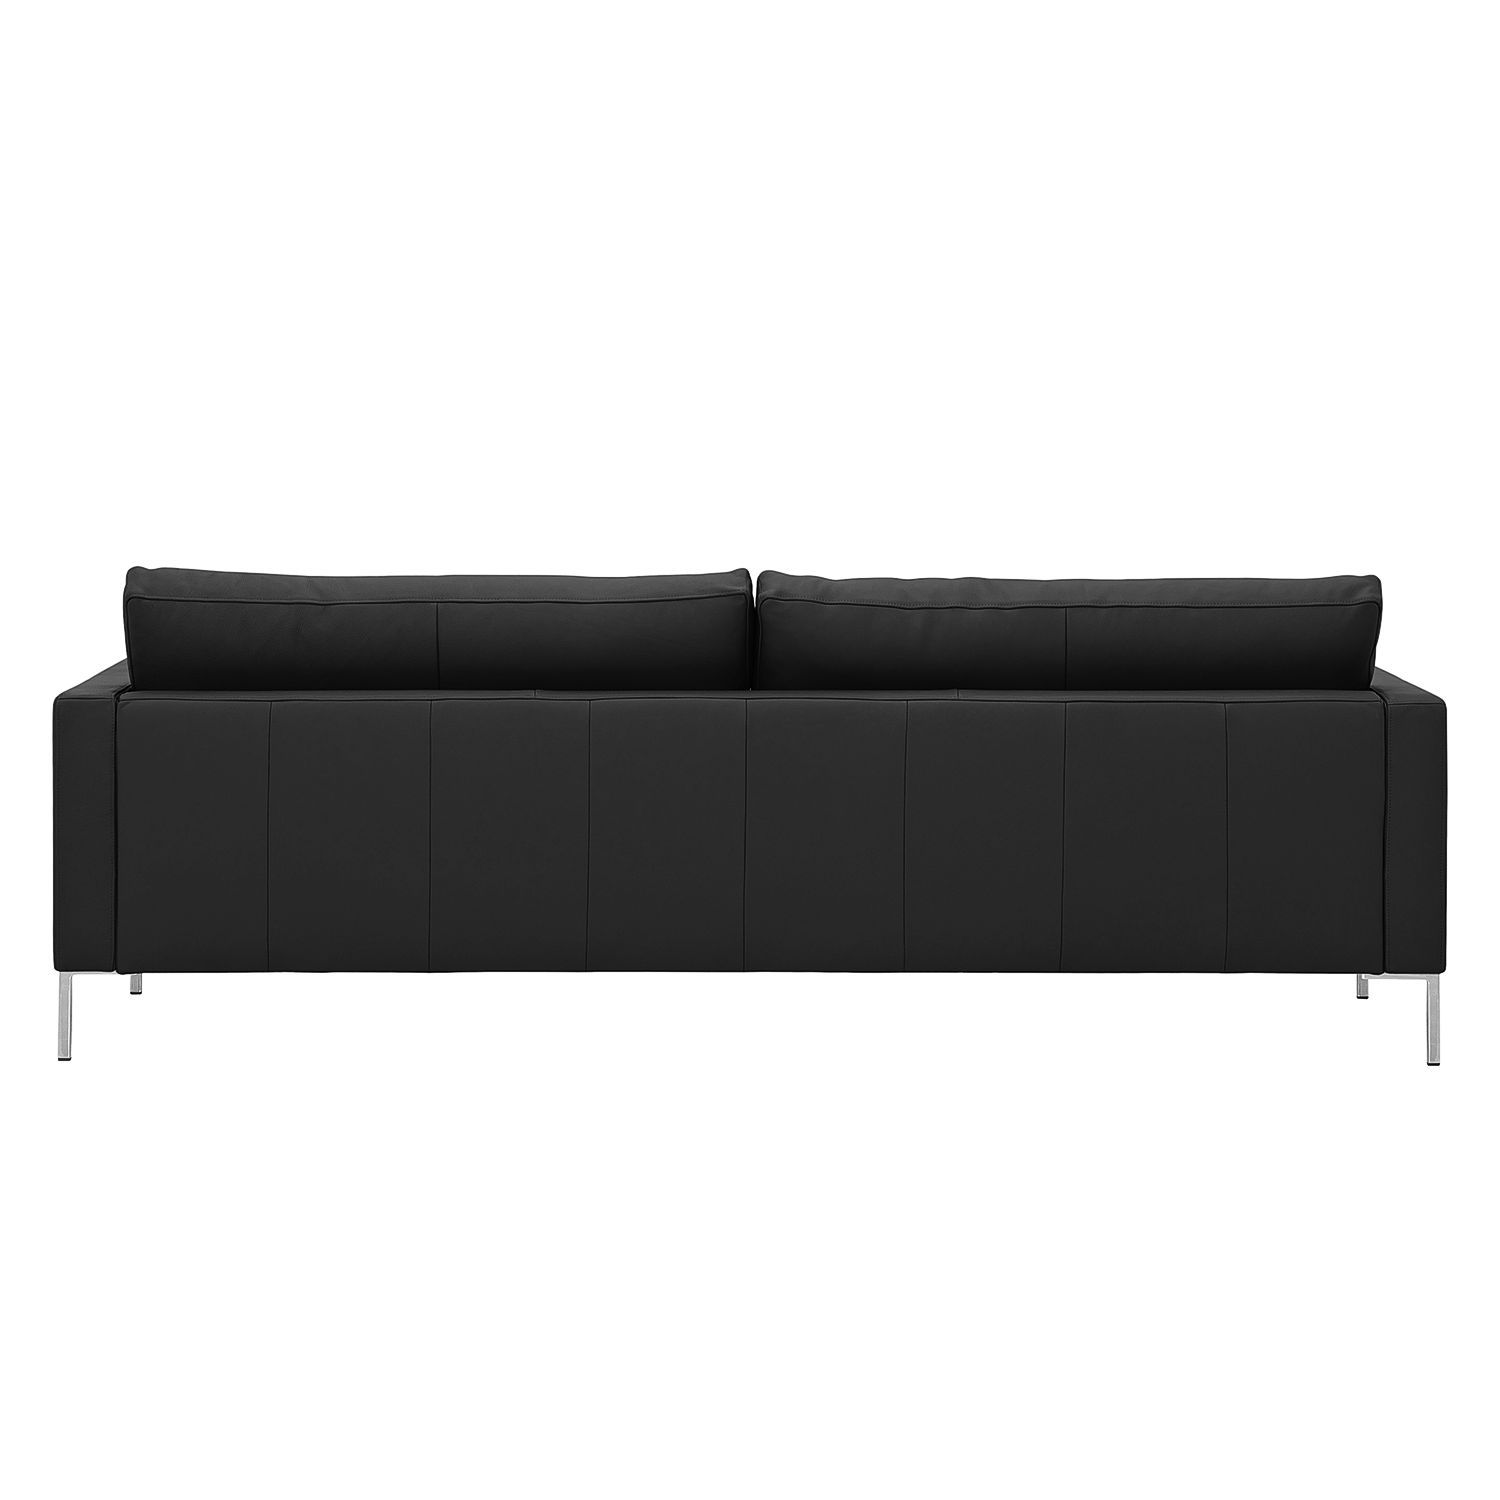 Canape Portobello 3 Places In 2020 Sofa Mit Relaxfunktion Sofas Und Sofa